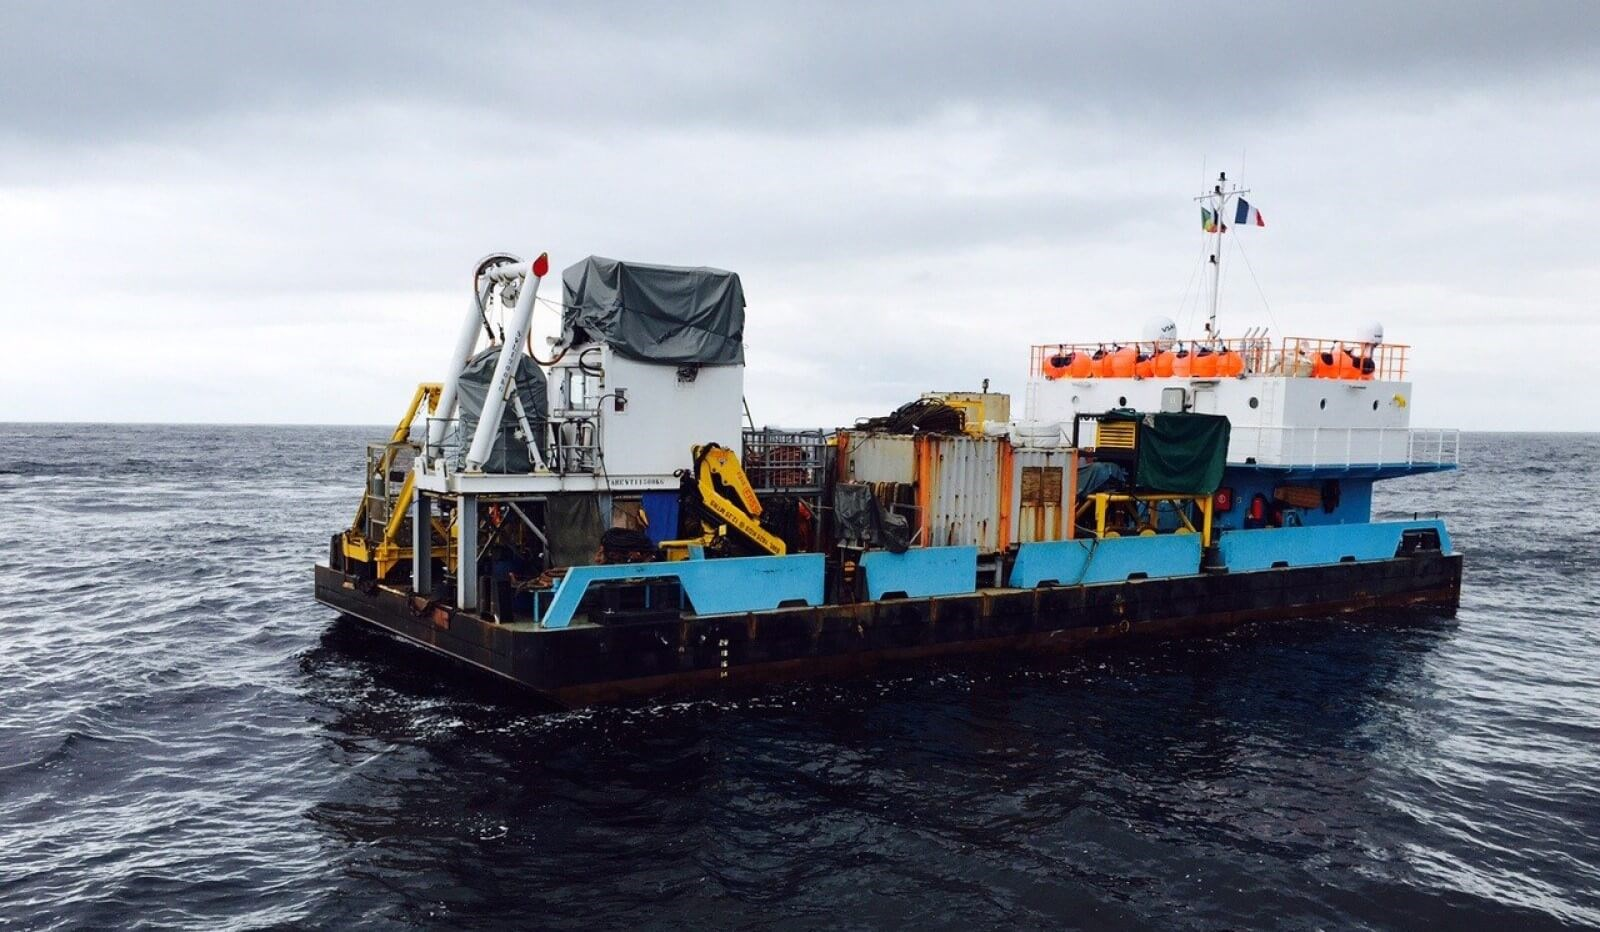 accommodation barge for sale 07600 (3)